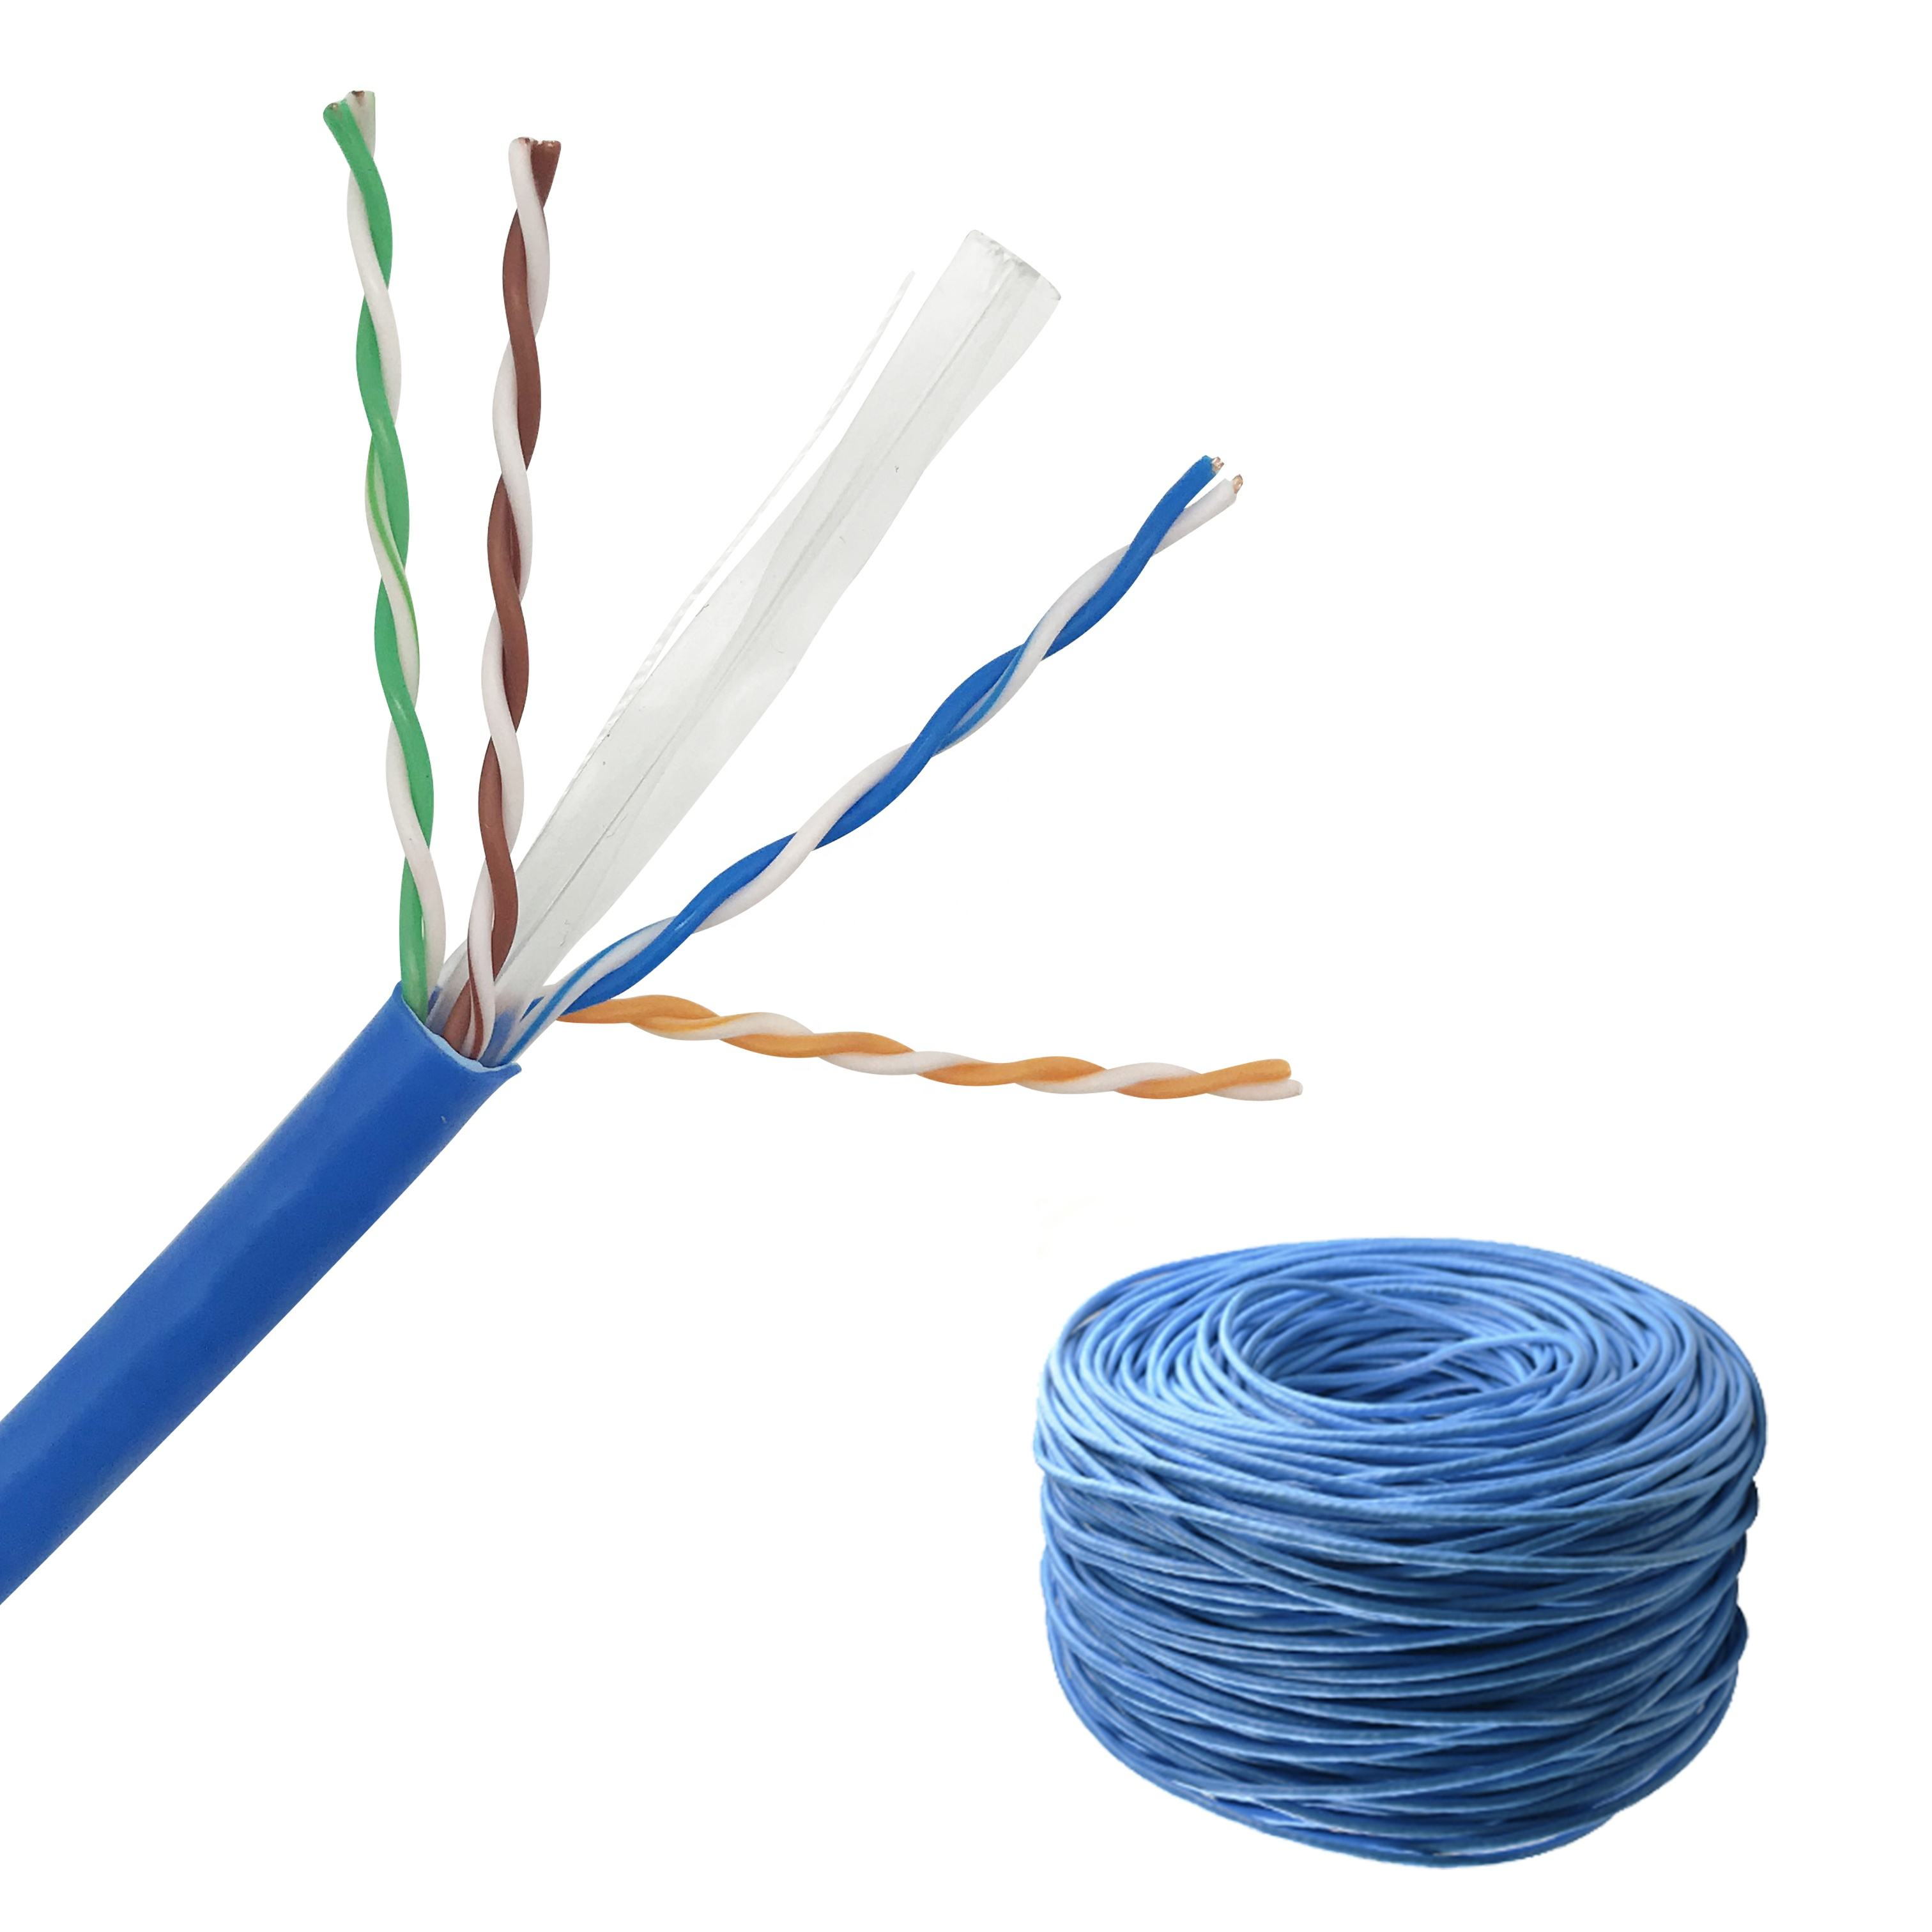 CAT6 UTP LAN Kabel Mudah Pull Box 305 M Test 4 Pair 24 AWG Cobre Kabel De Merah RJ45 Cat6 UTP 1000ft